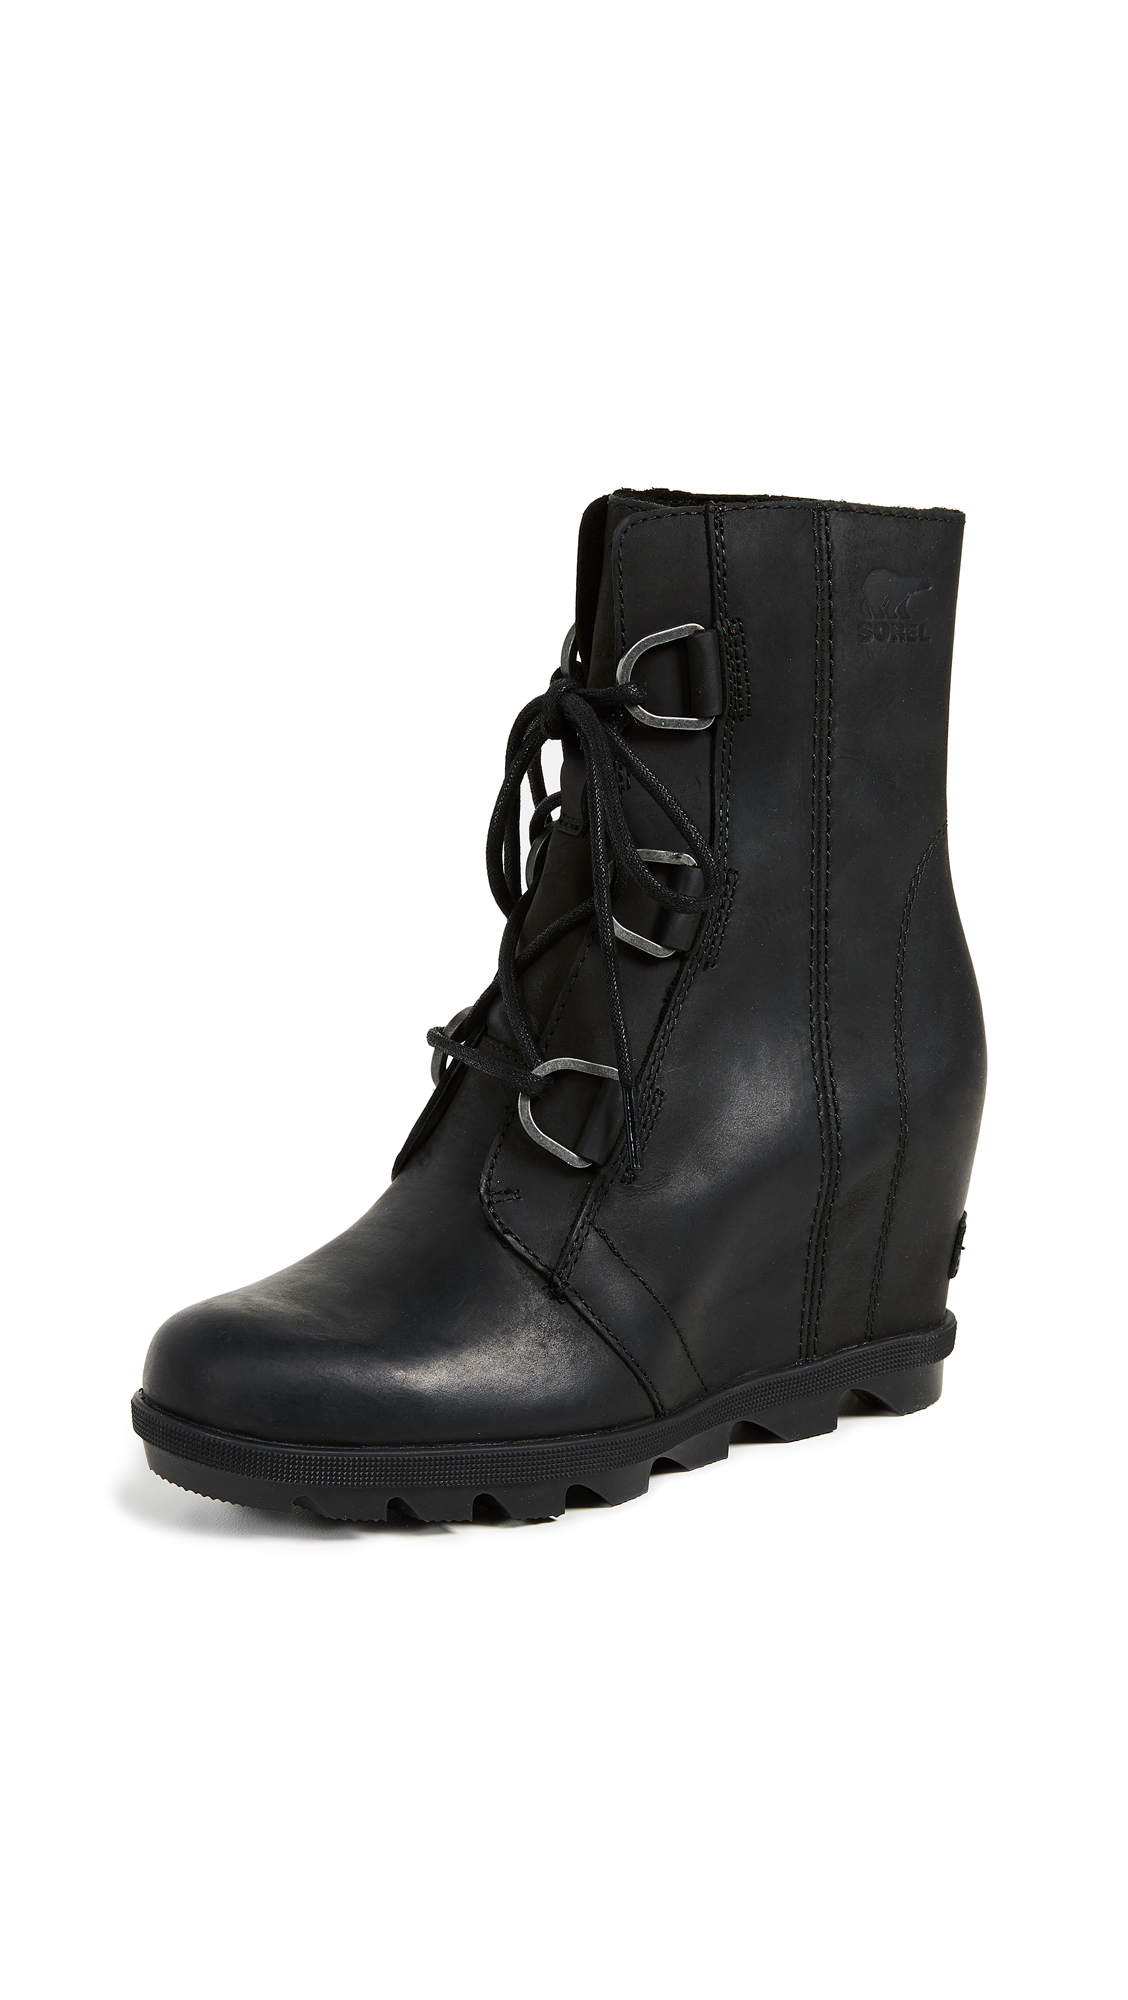 Sorel Joan of Arctic Wedge II Boots - Black